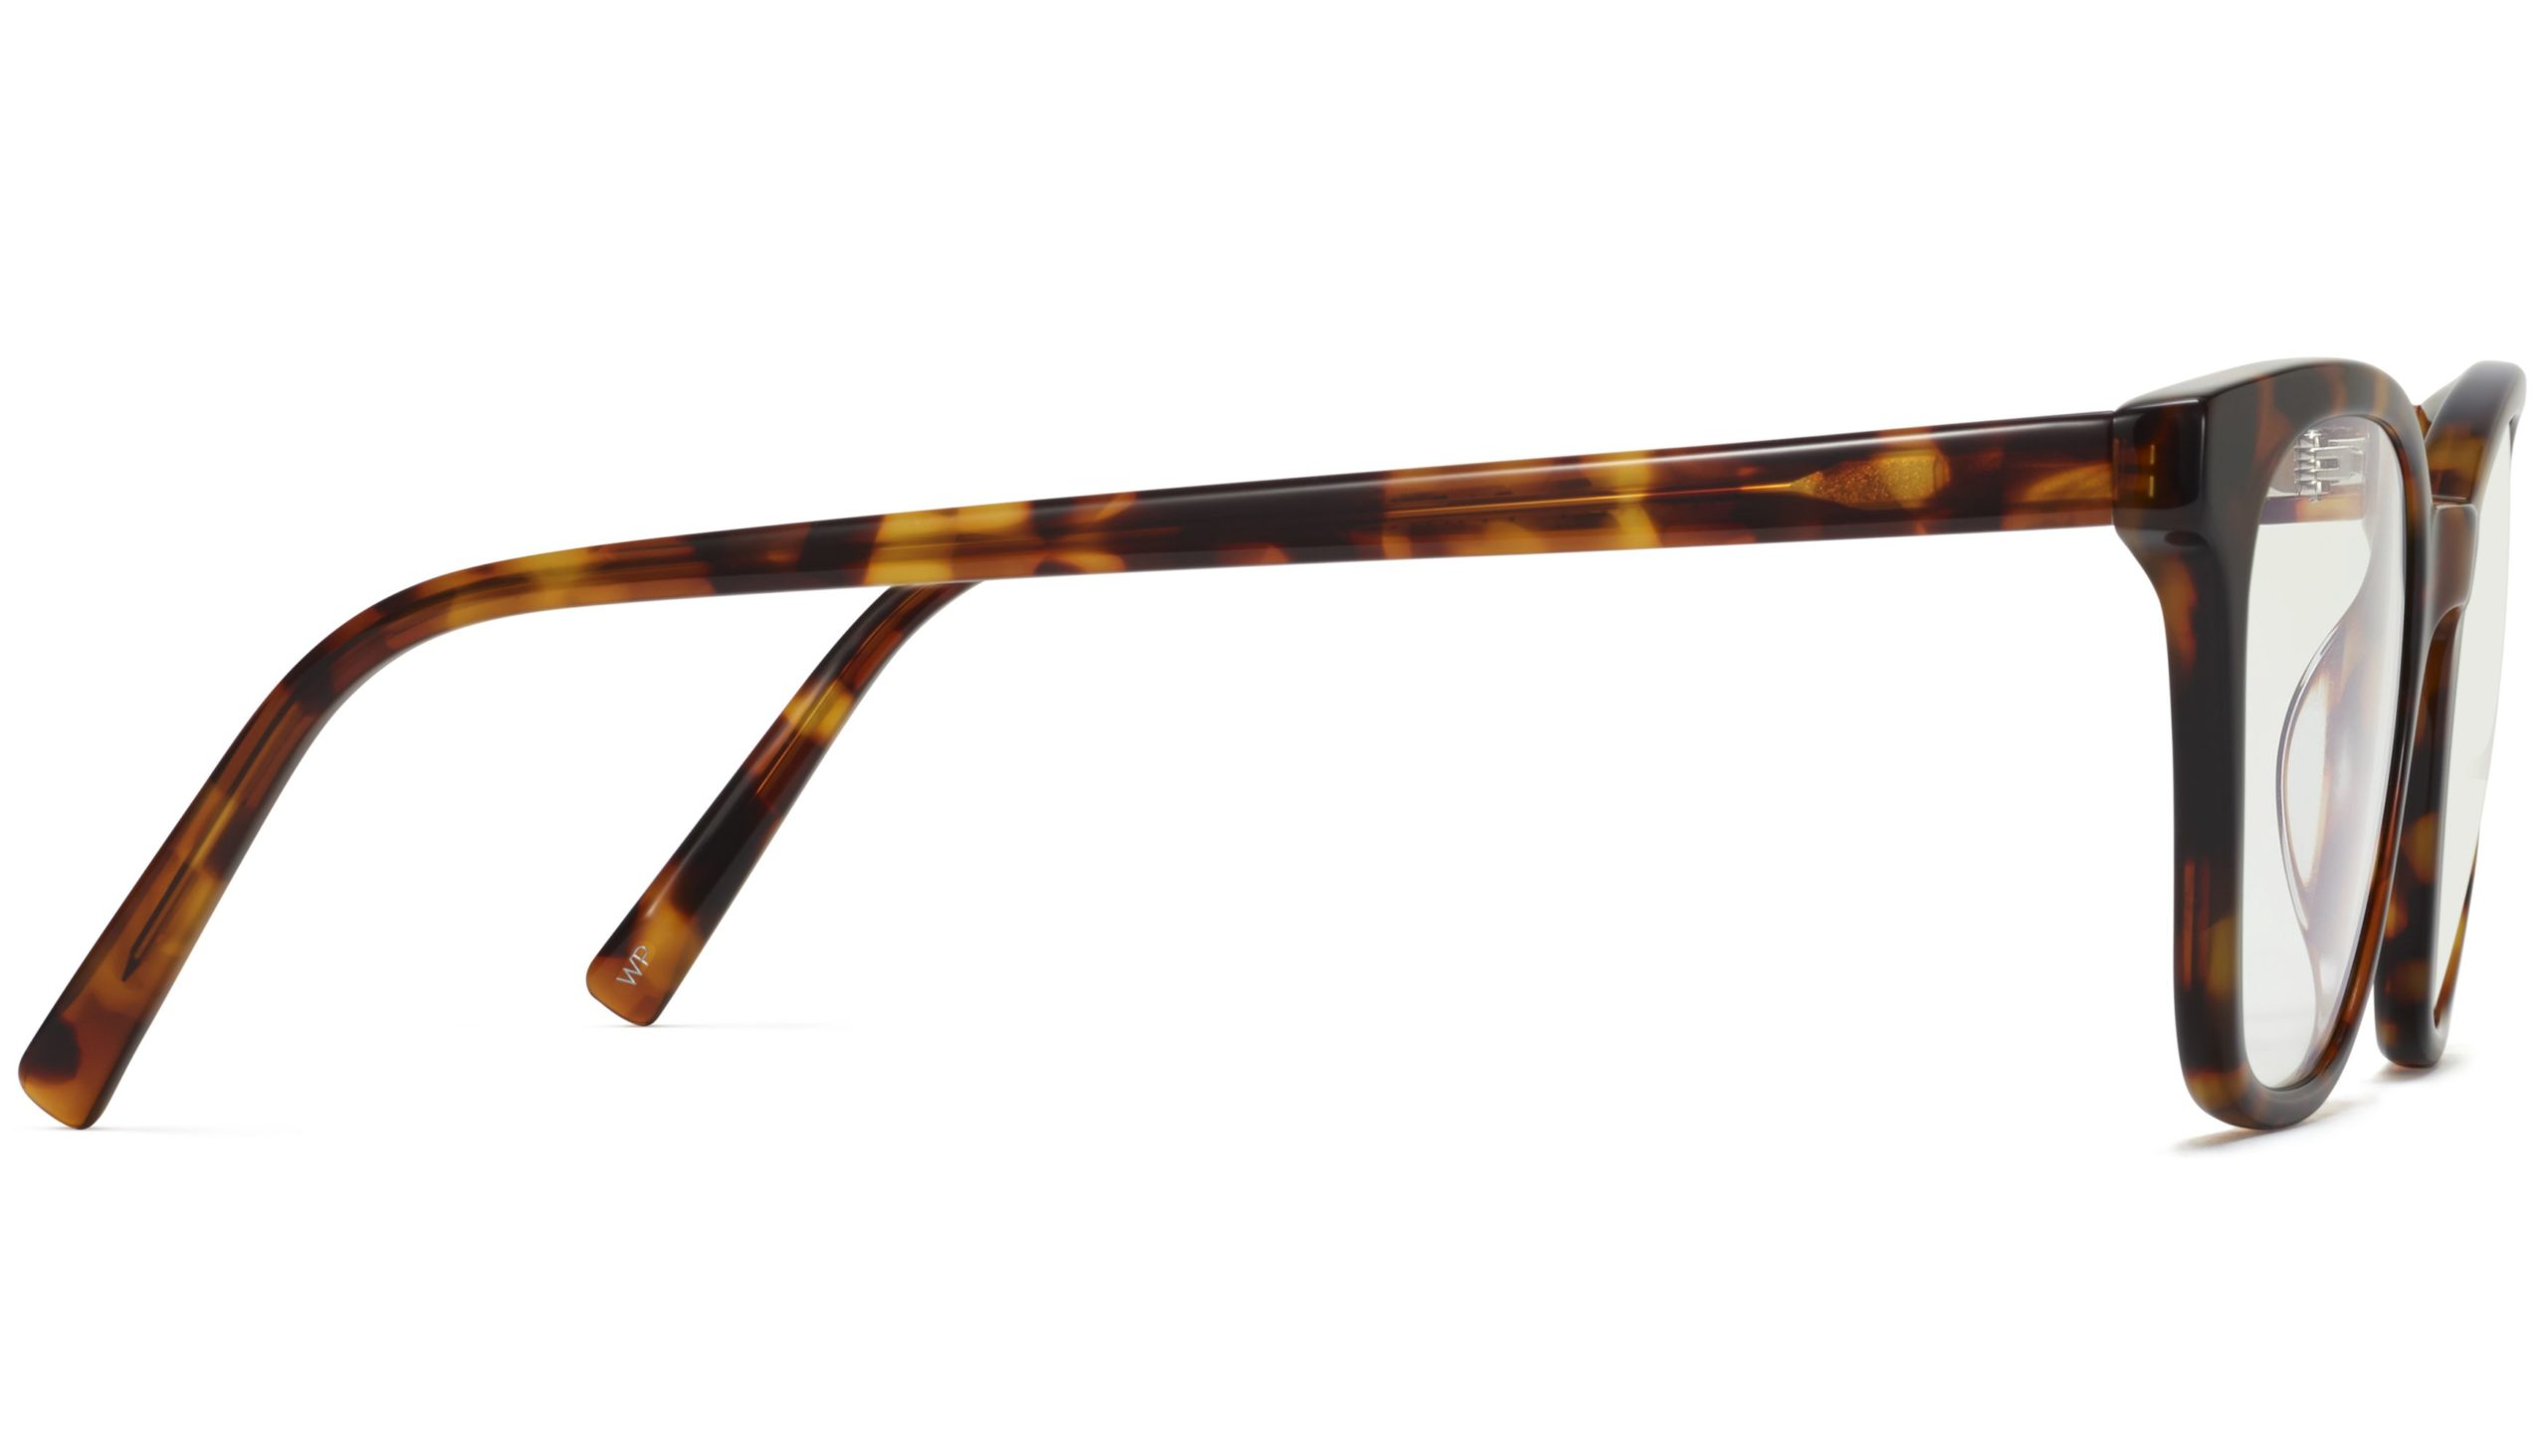 Side View Image of Griffin Eyeglasses Collection, by Warby Parker Brand, in Acorn Tortoise Color